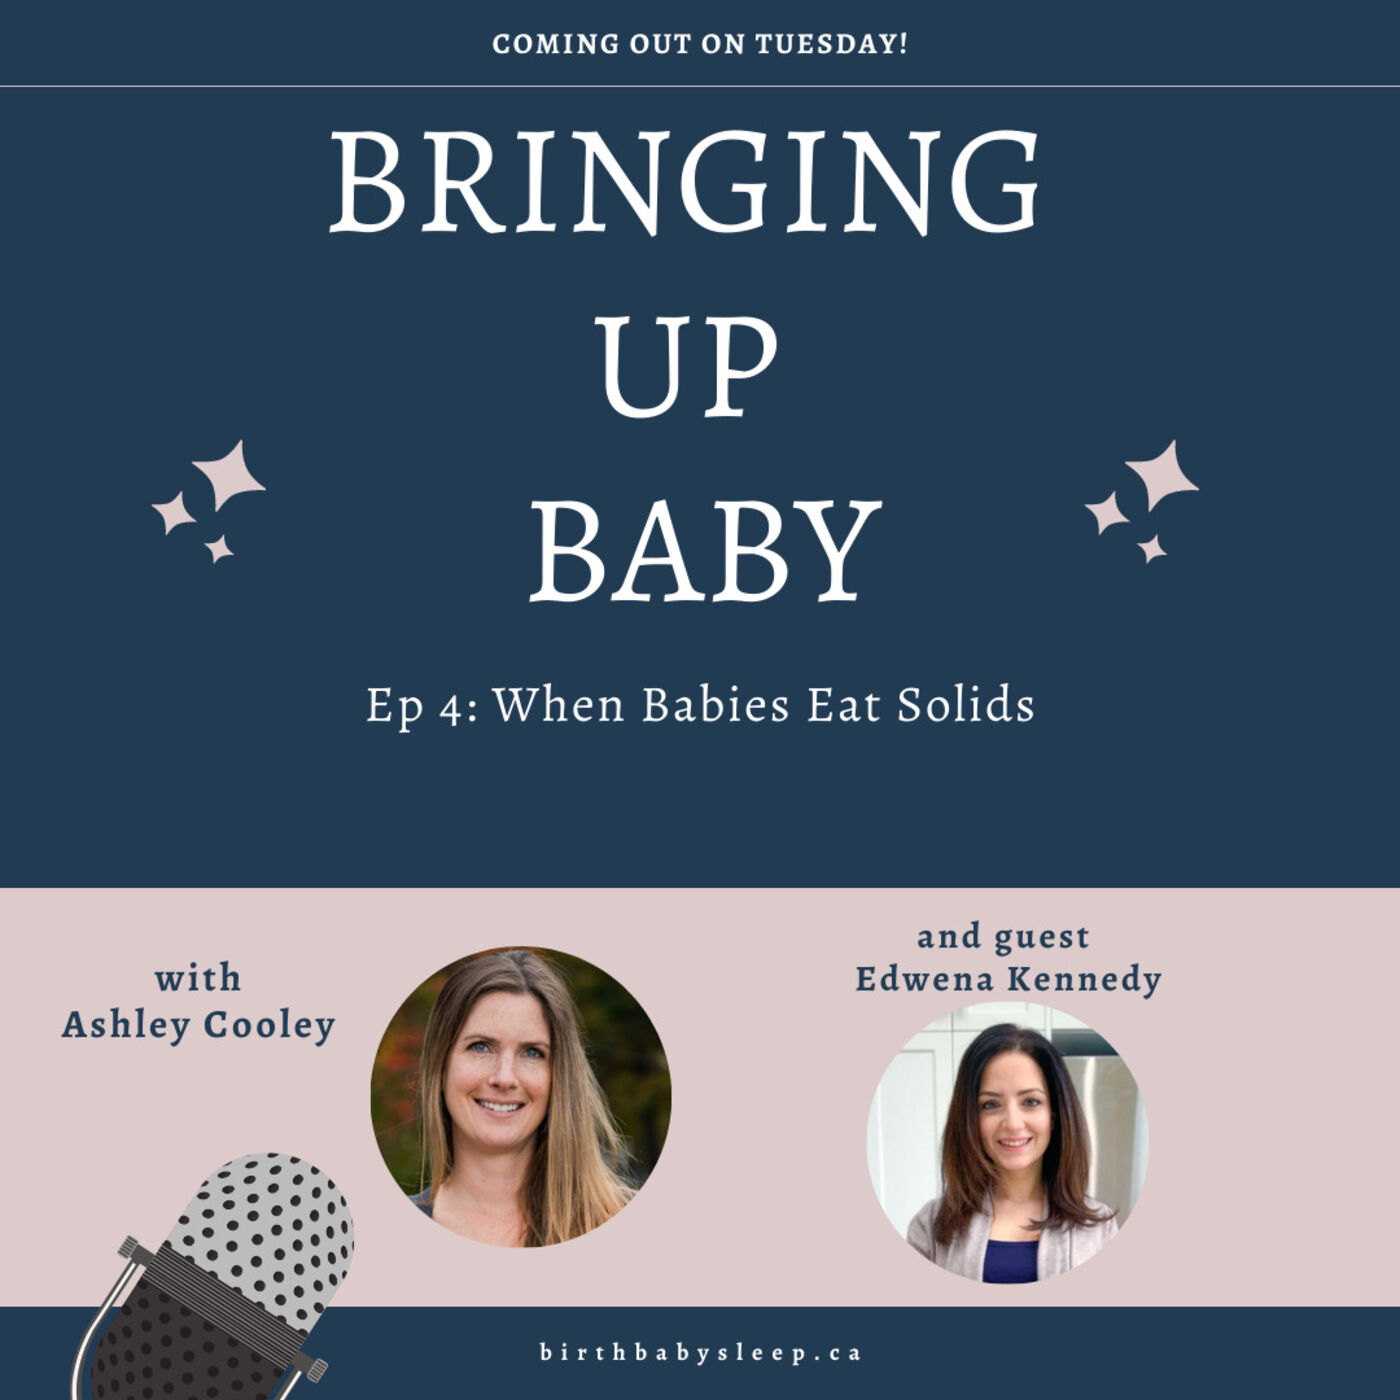 When Babies Eat Solids with Edwena Kennedy